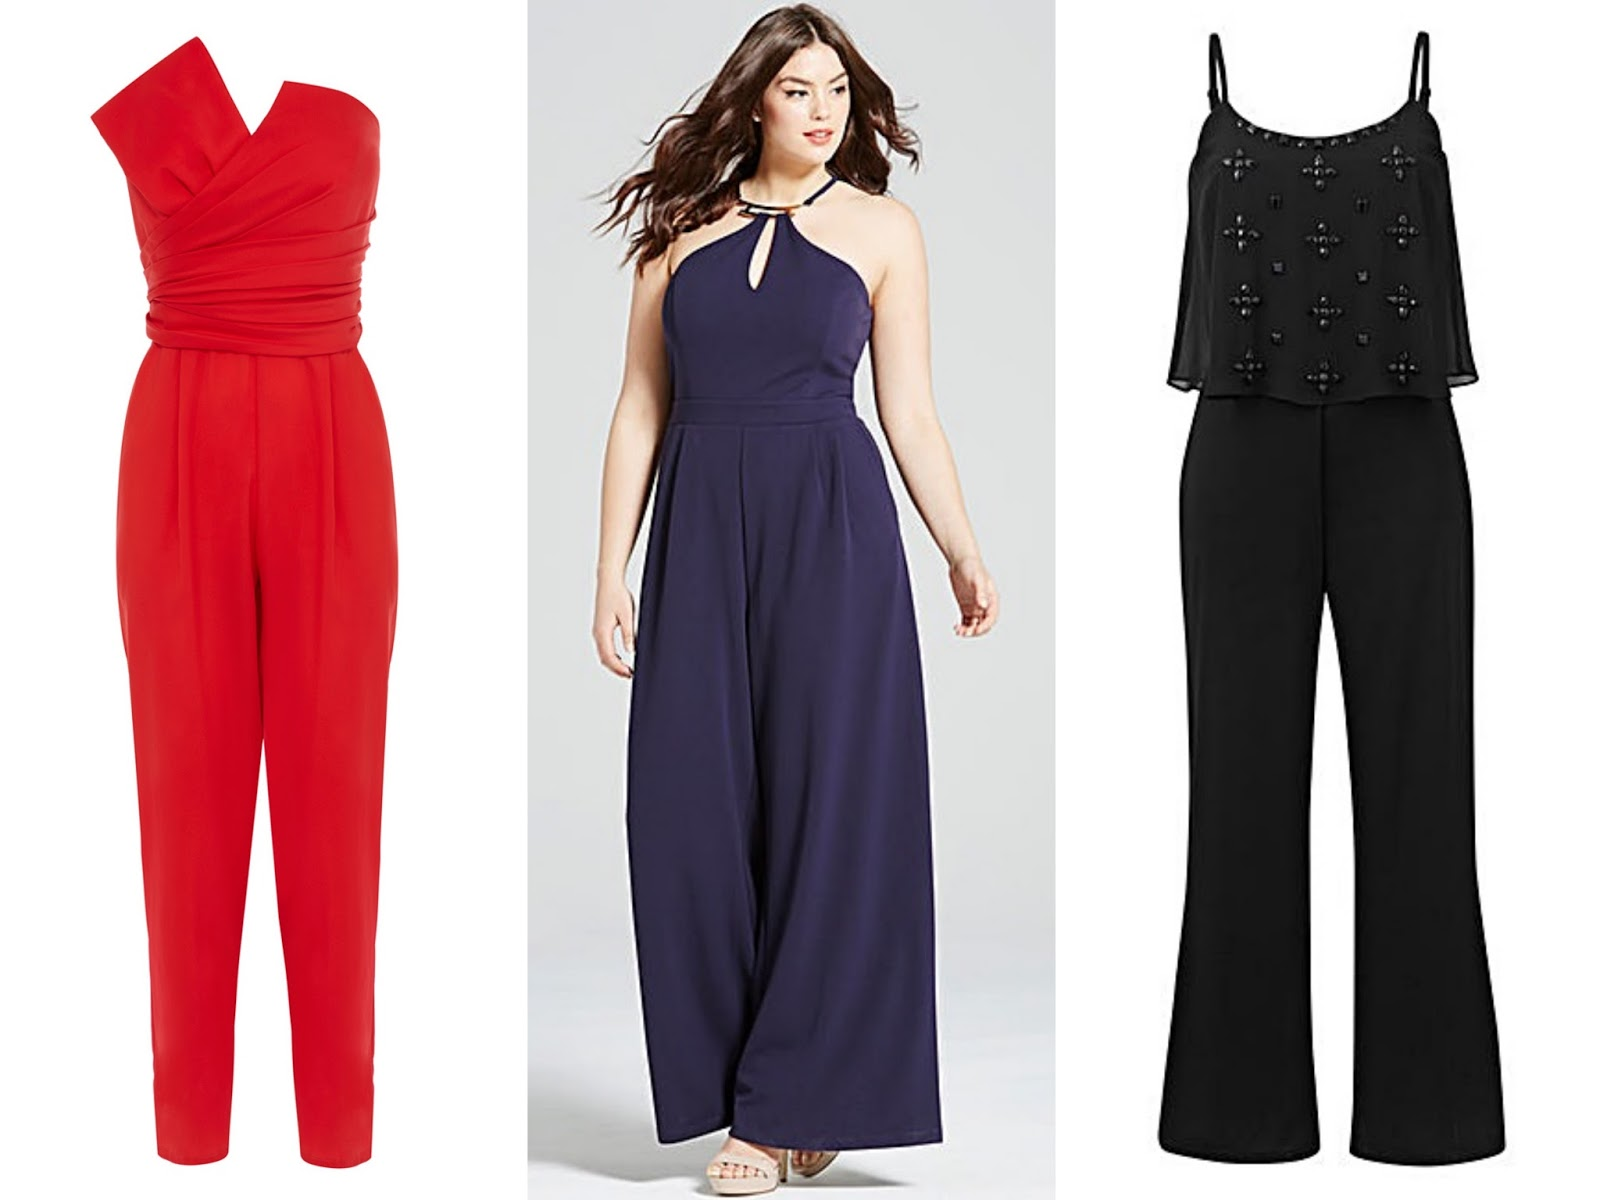 wedding guest fashion inspiration style me curvy wedding guest fashion inspiration style me curvy